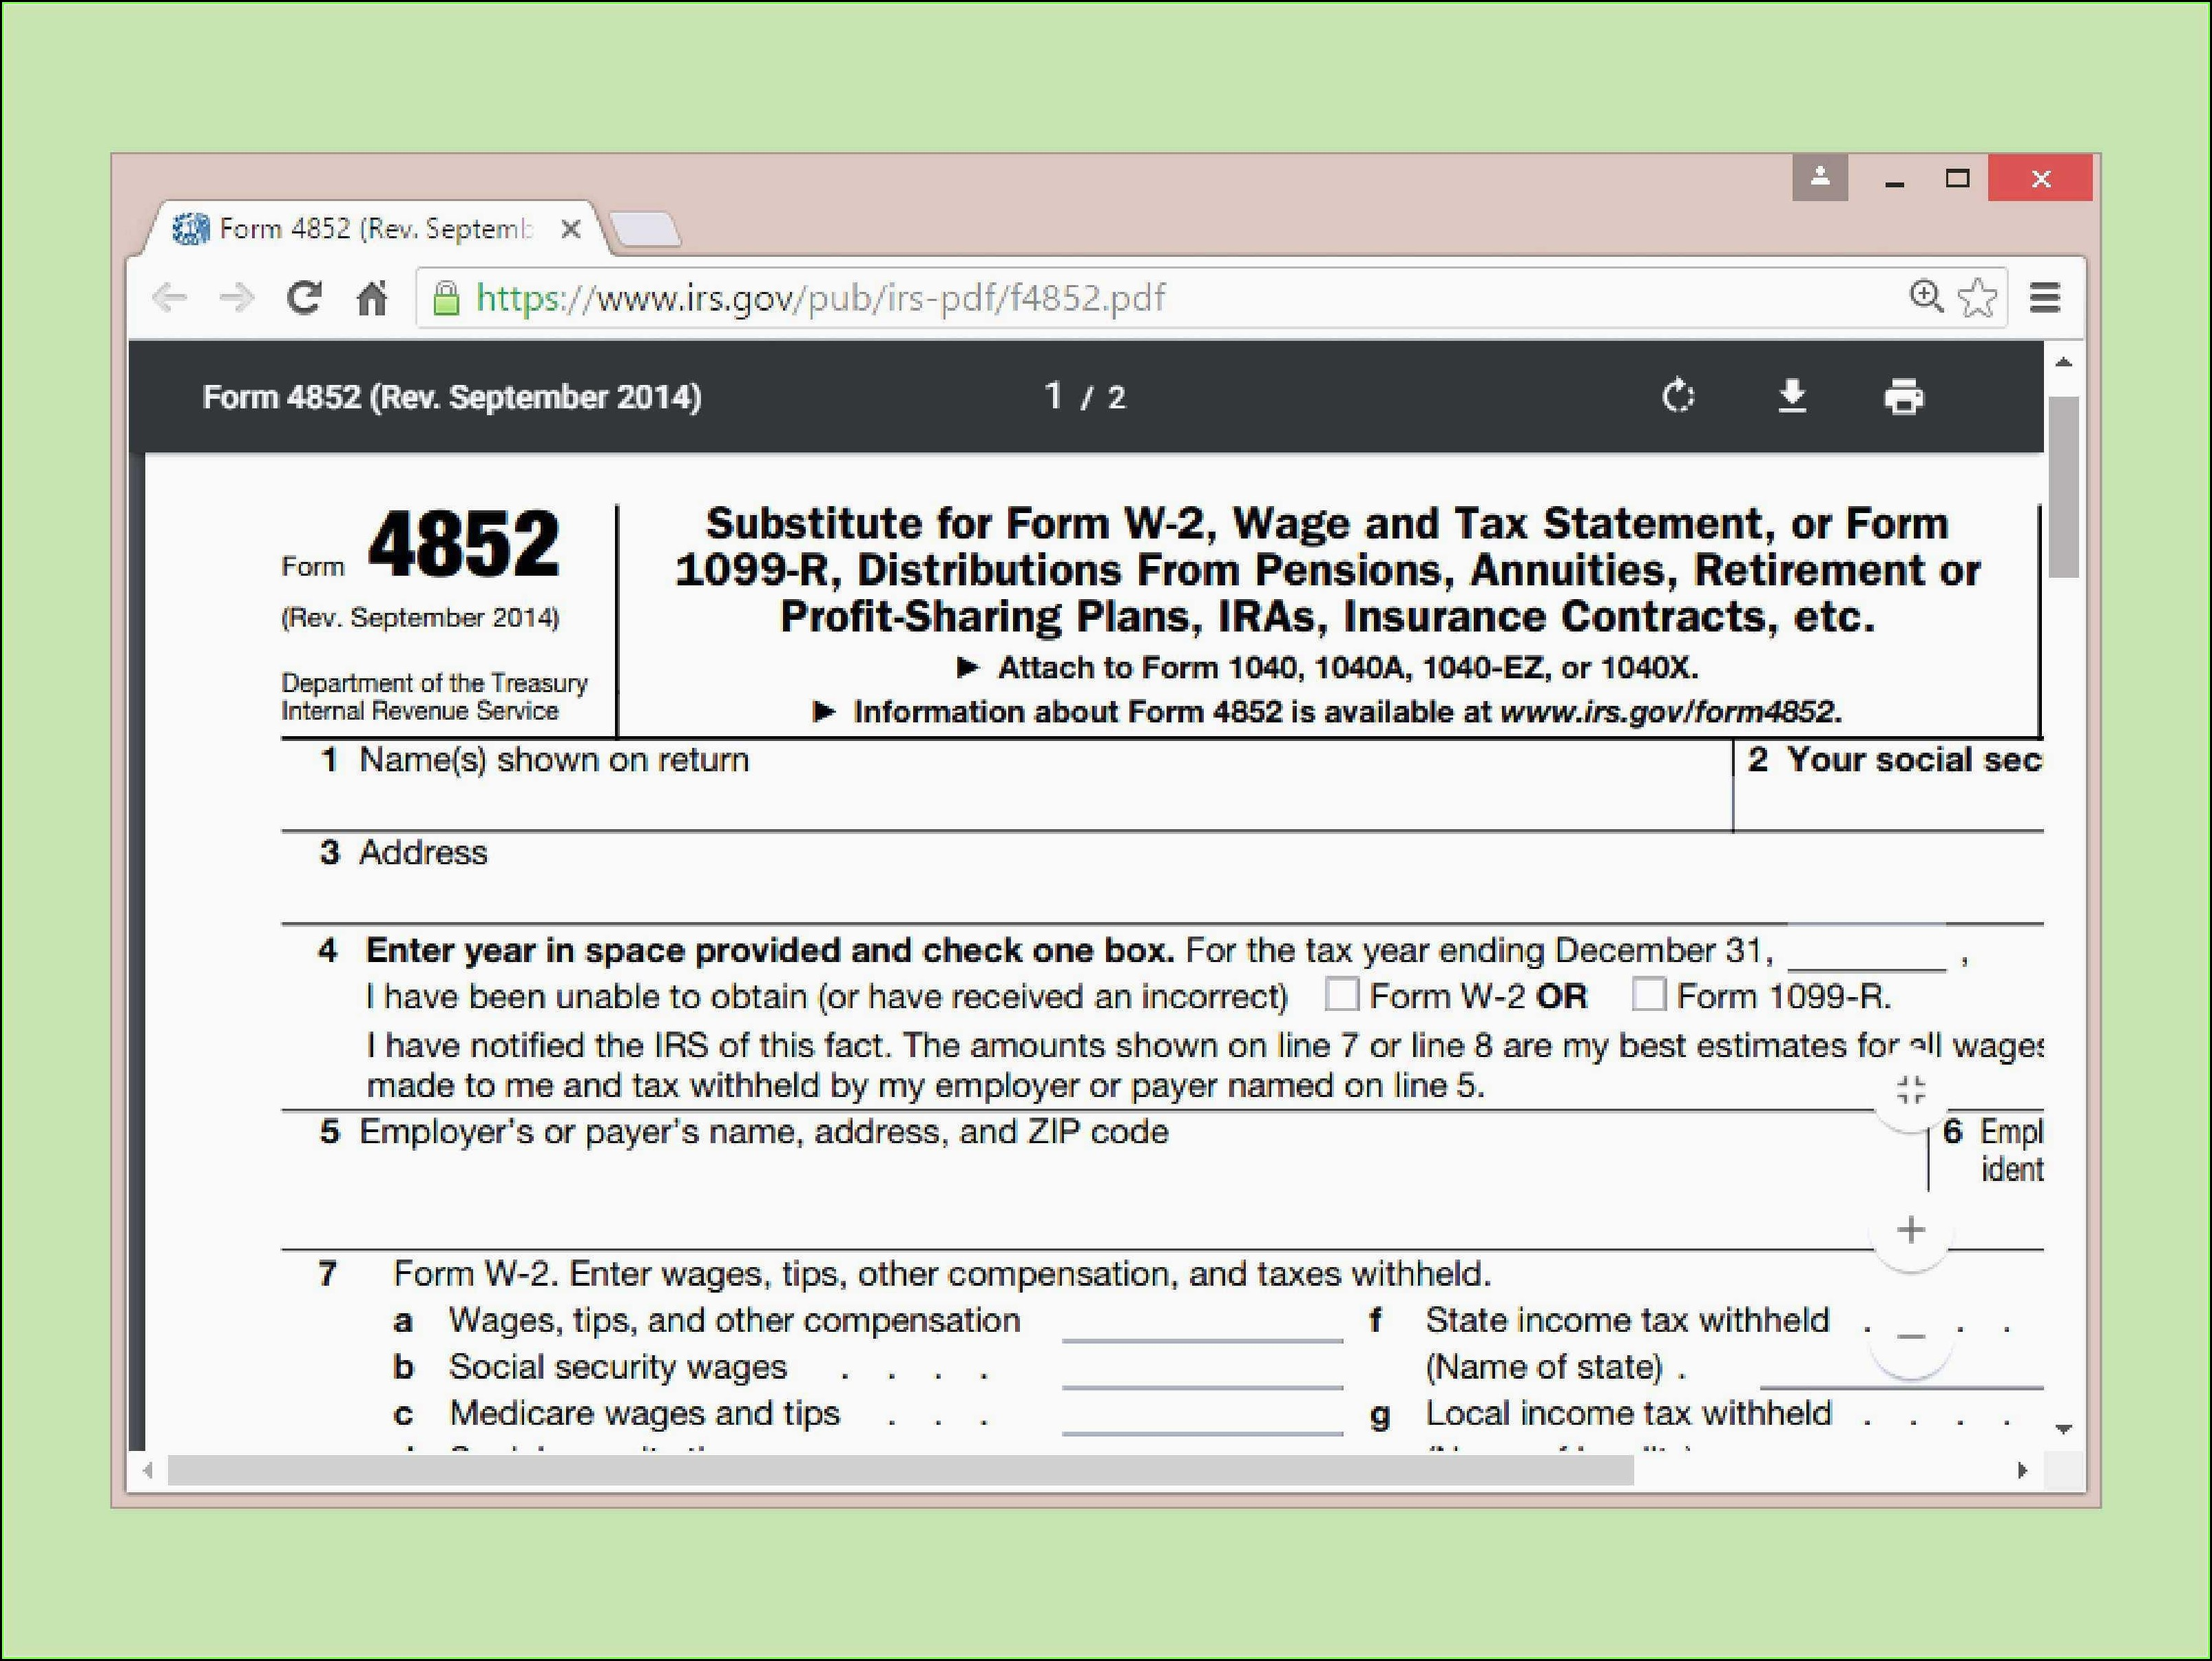 Irs Form 1040x Instructions 2014